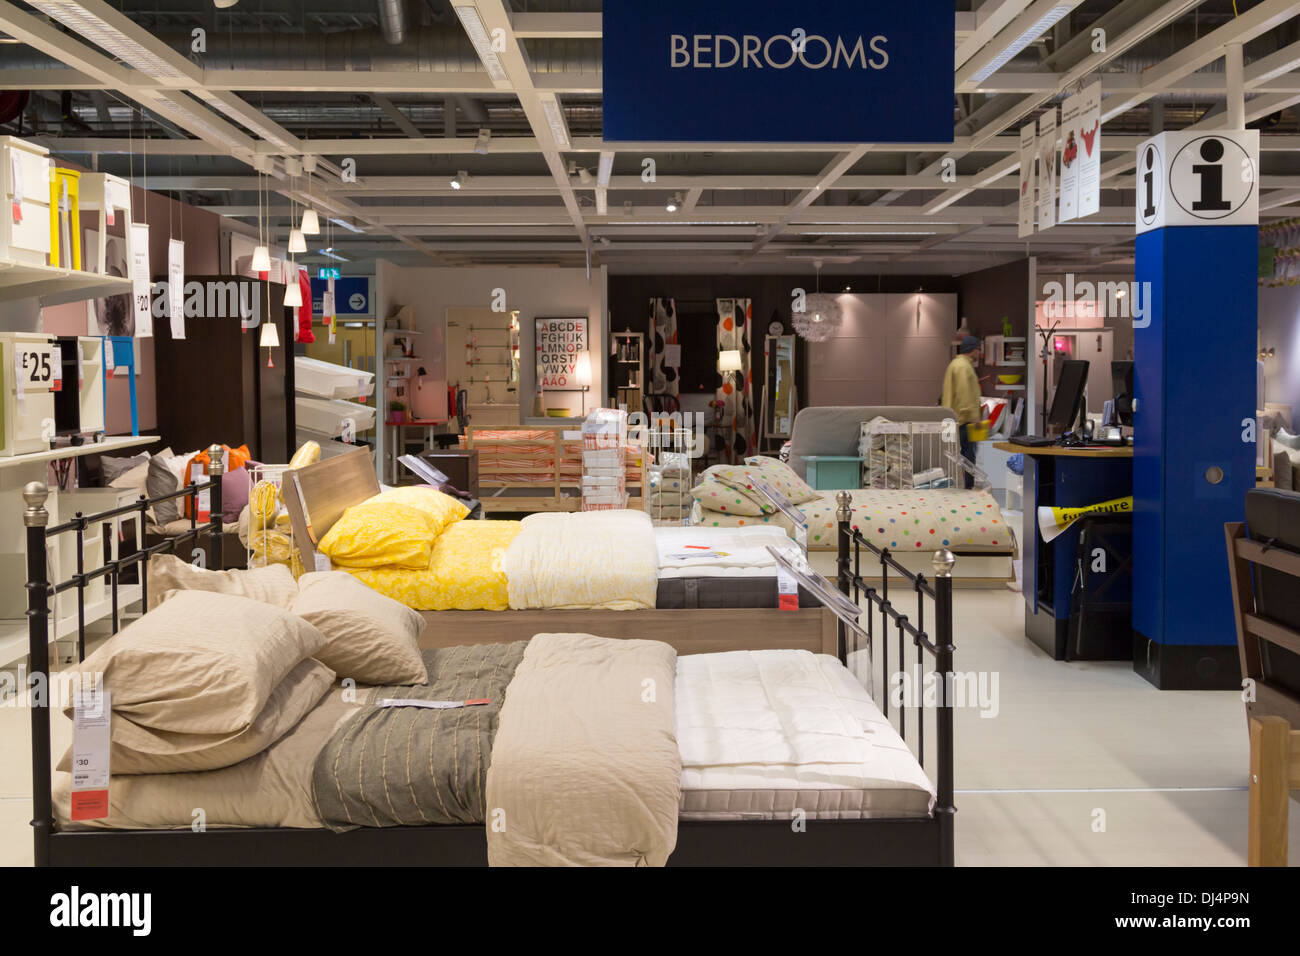 Ikea Shops London Of Bedroom Department Ikea Edmonton London Stock Photo